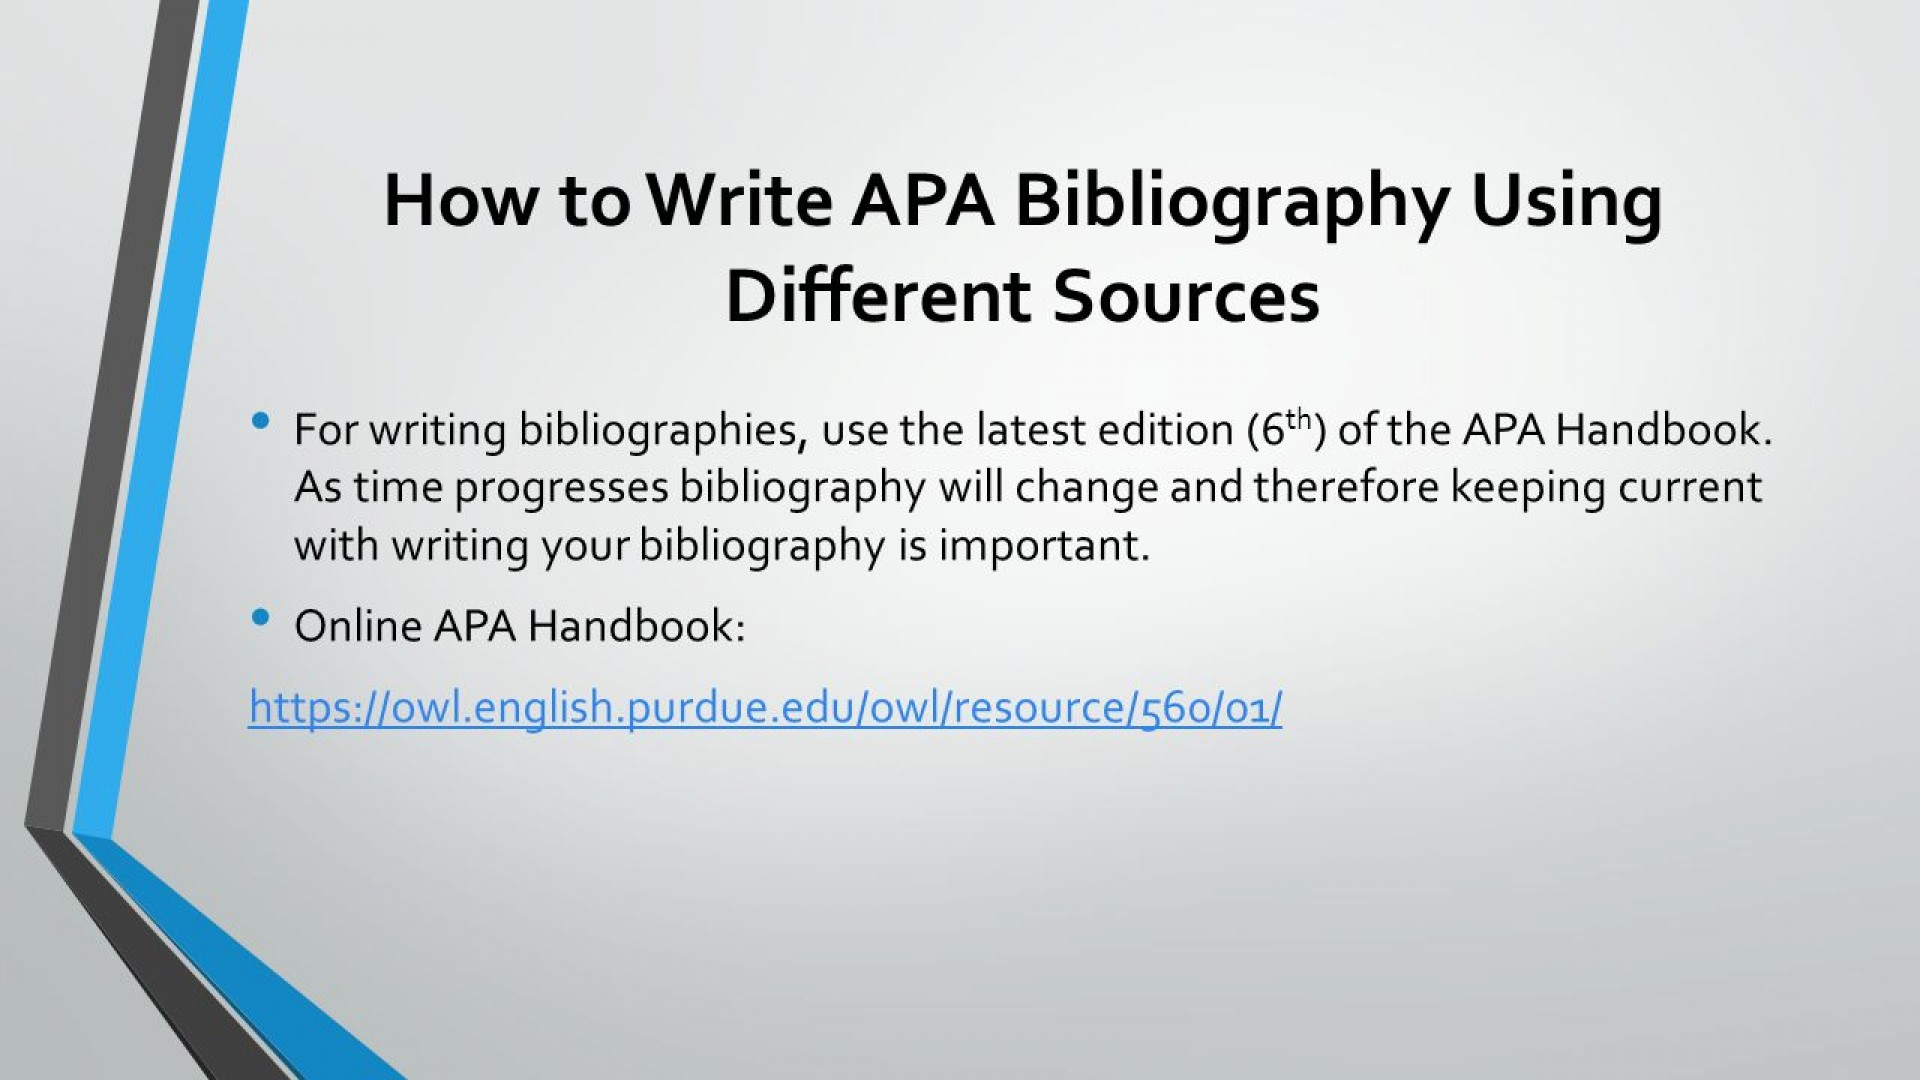 010 Research Paper Howtowriteapabibliographyusingdifferentsources How To Write References In Awful Ppt 1920